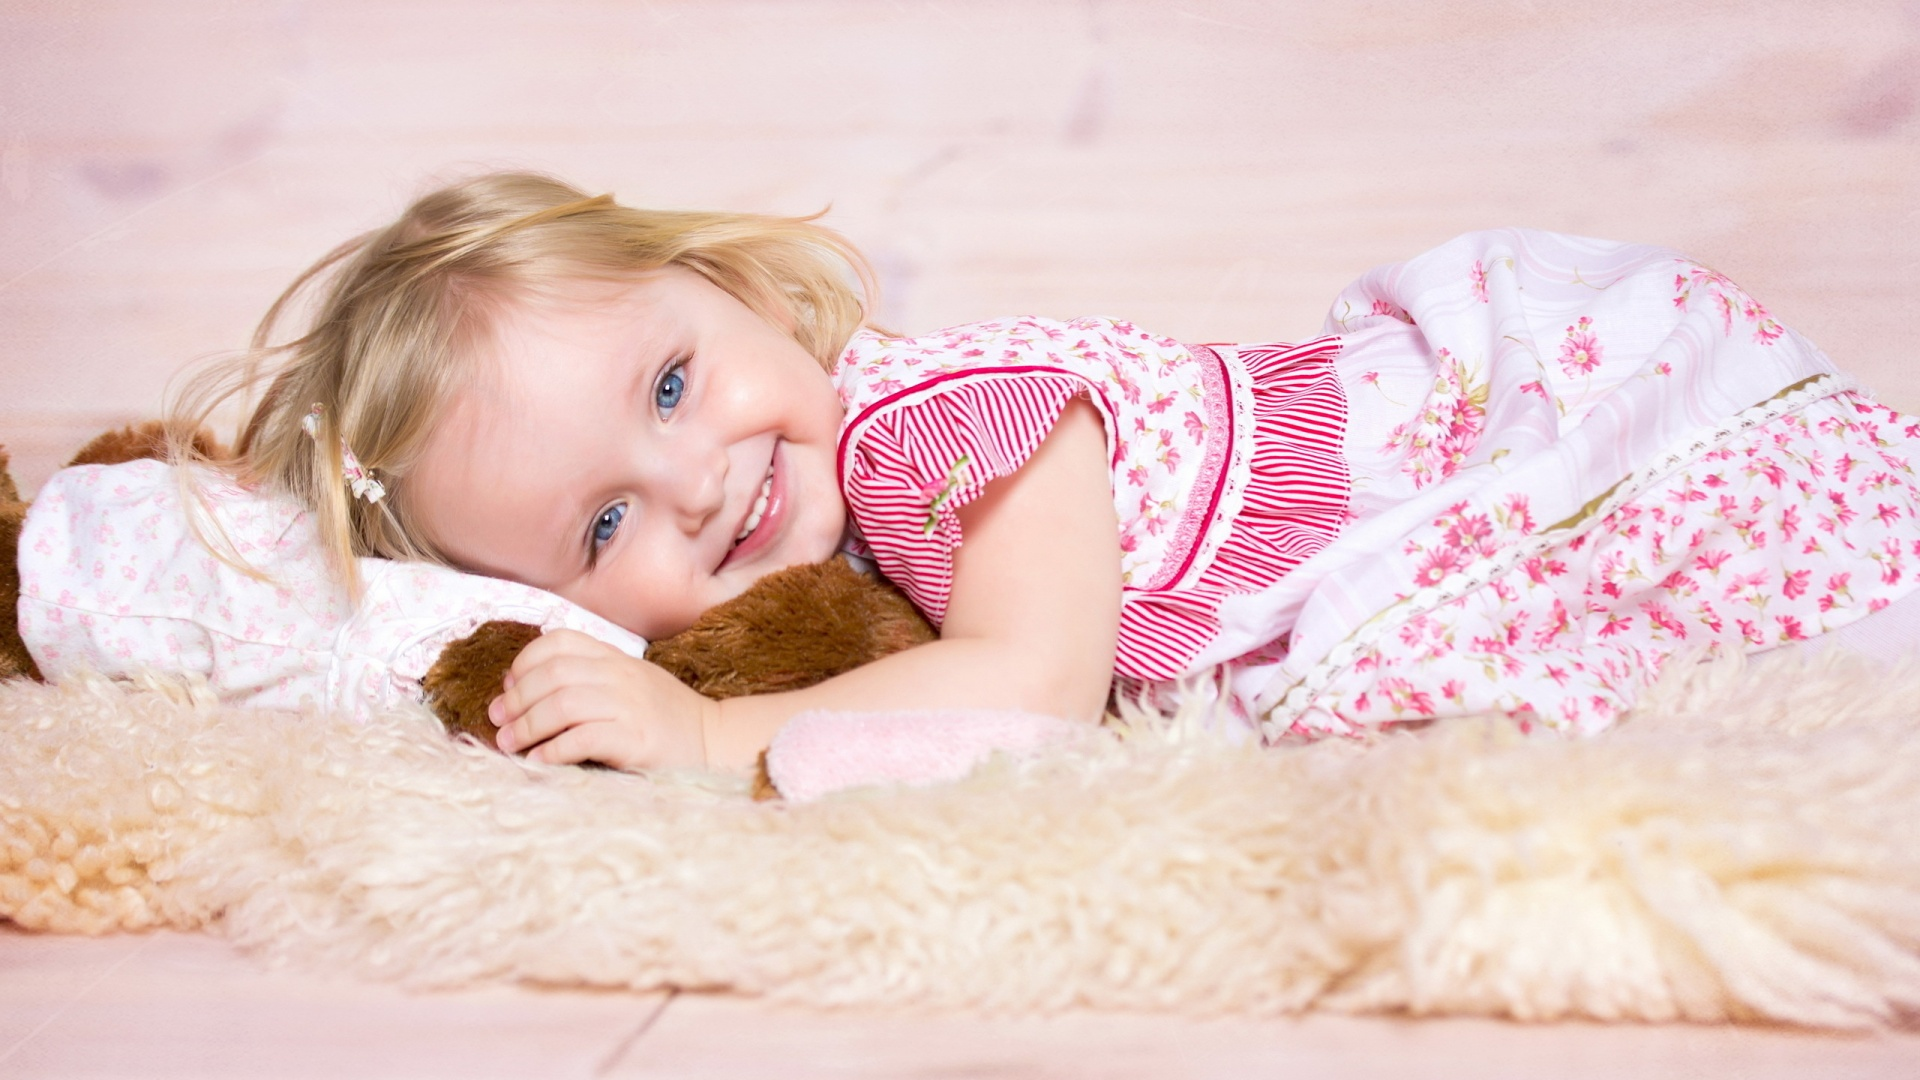 Cute smiling baby girl 1920 x 1080 download close